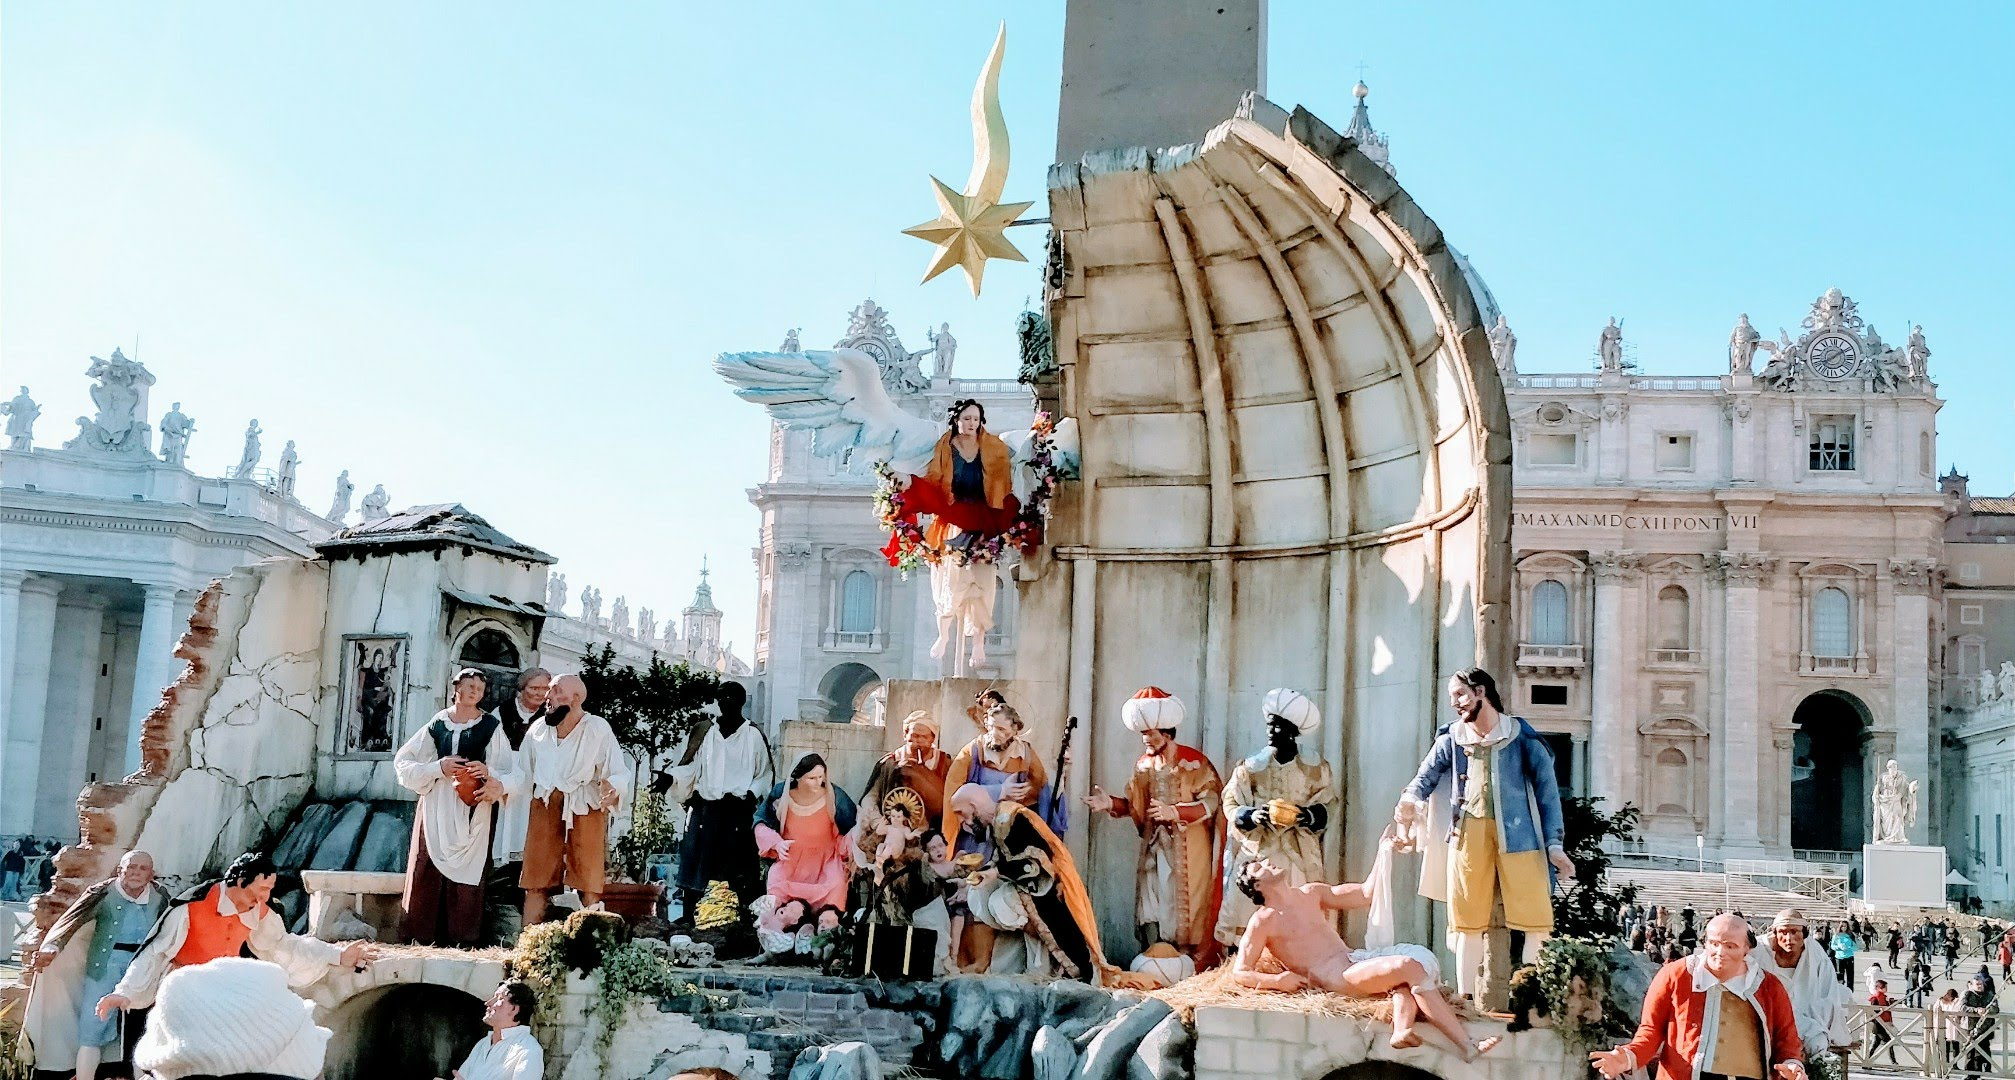 Rome during Christmas